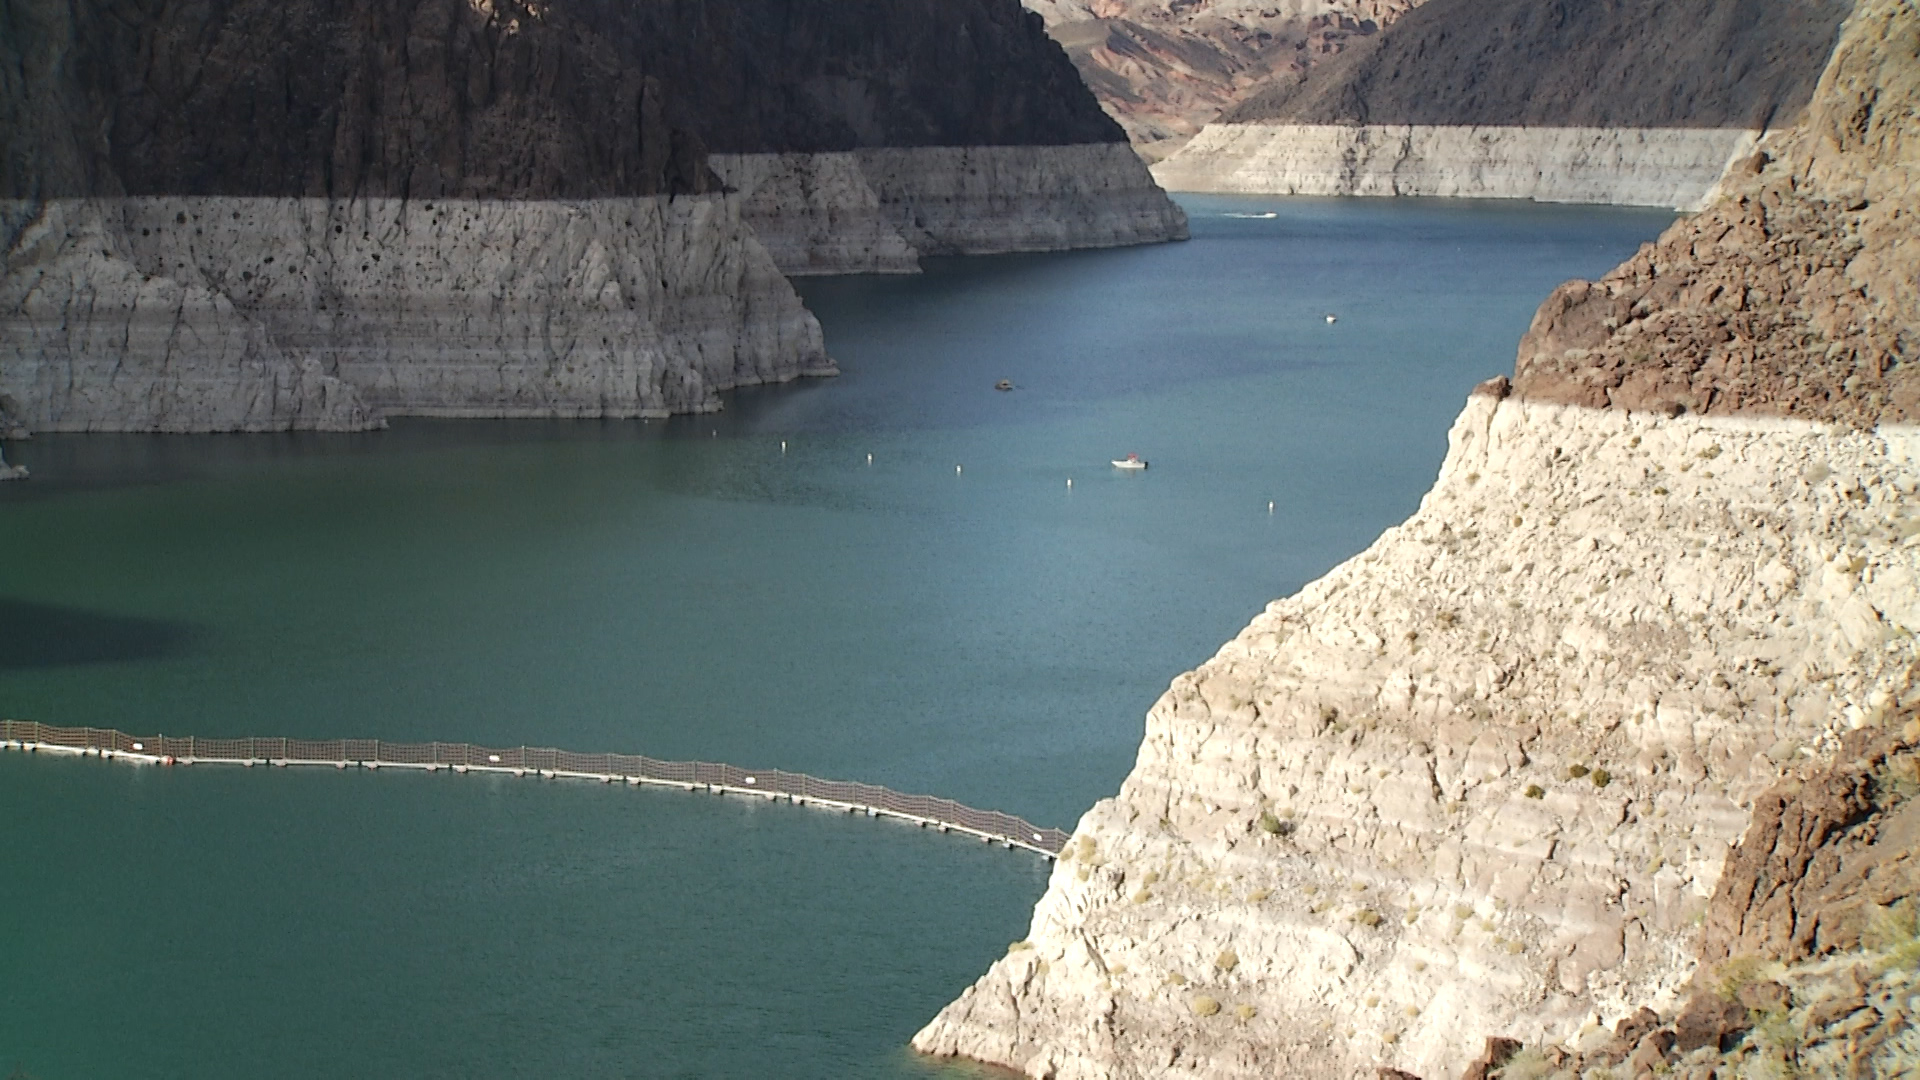 File image from the Hoover Dam.